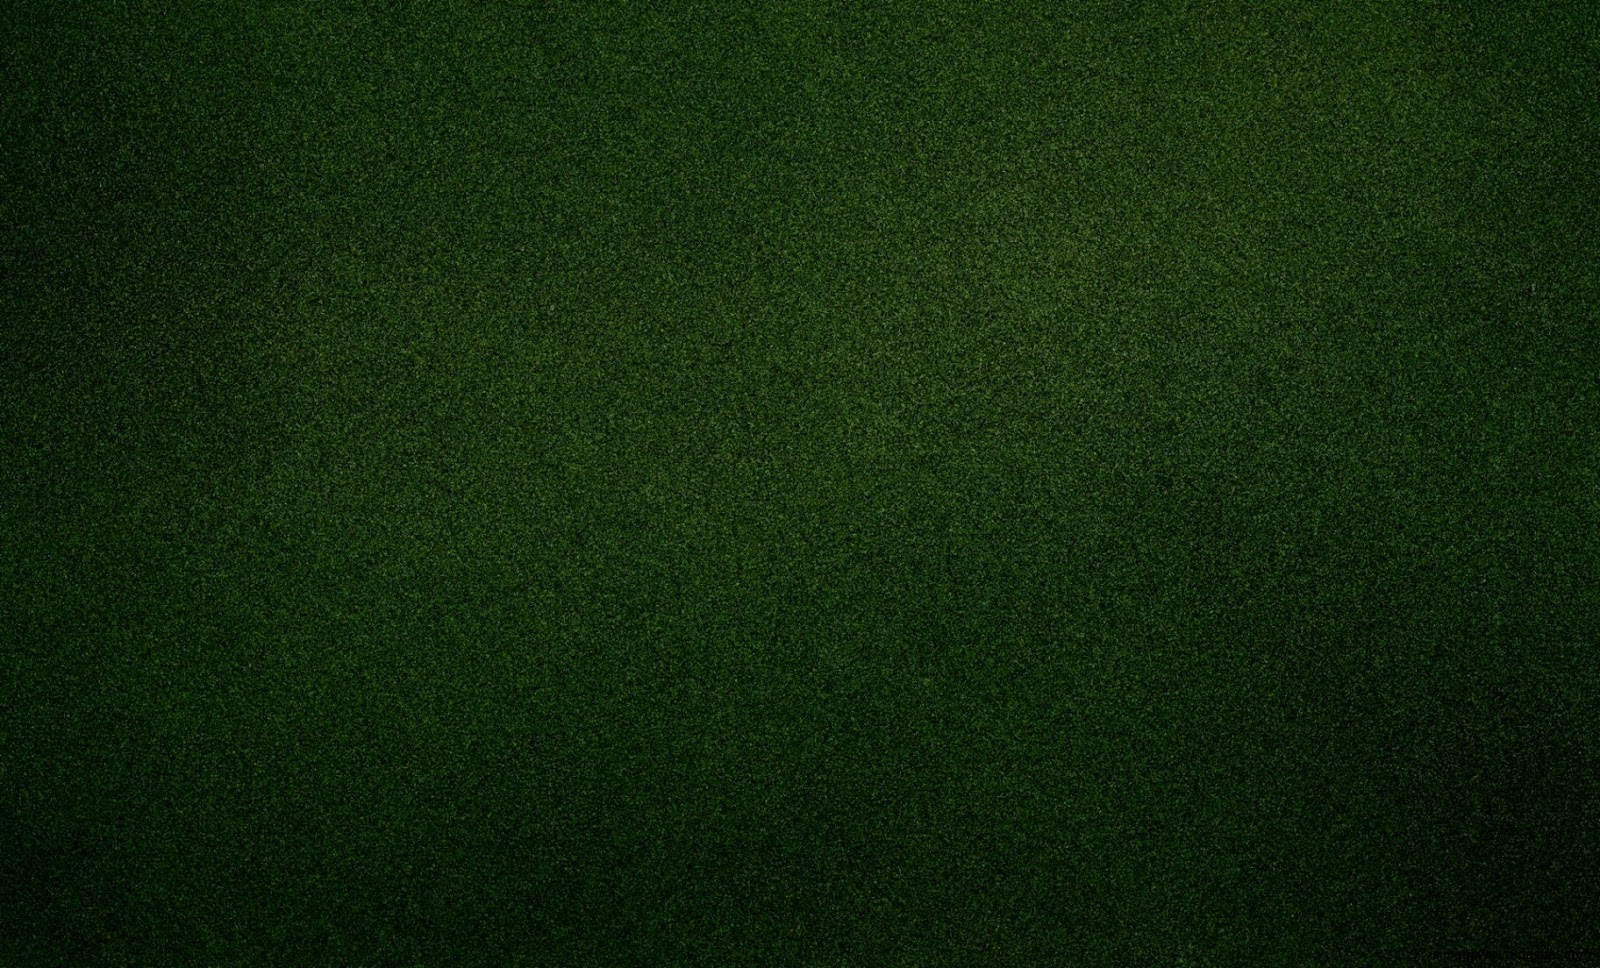 Grass Texture Wallpaper  Impremedianet. Kitchen City. State Of The Art Kitchen. Kmart Kitchen Tables And Chairs. Bamboo Kitchen Floor. Kitchen Remodeling Lancaster Pa. Kitchen Cabinets Shelves. Hardware For Kitchen Cabinets Ideas. Kitchen Accessories Wholesale